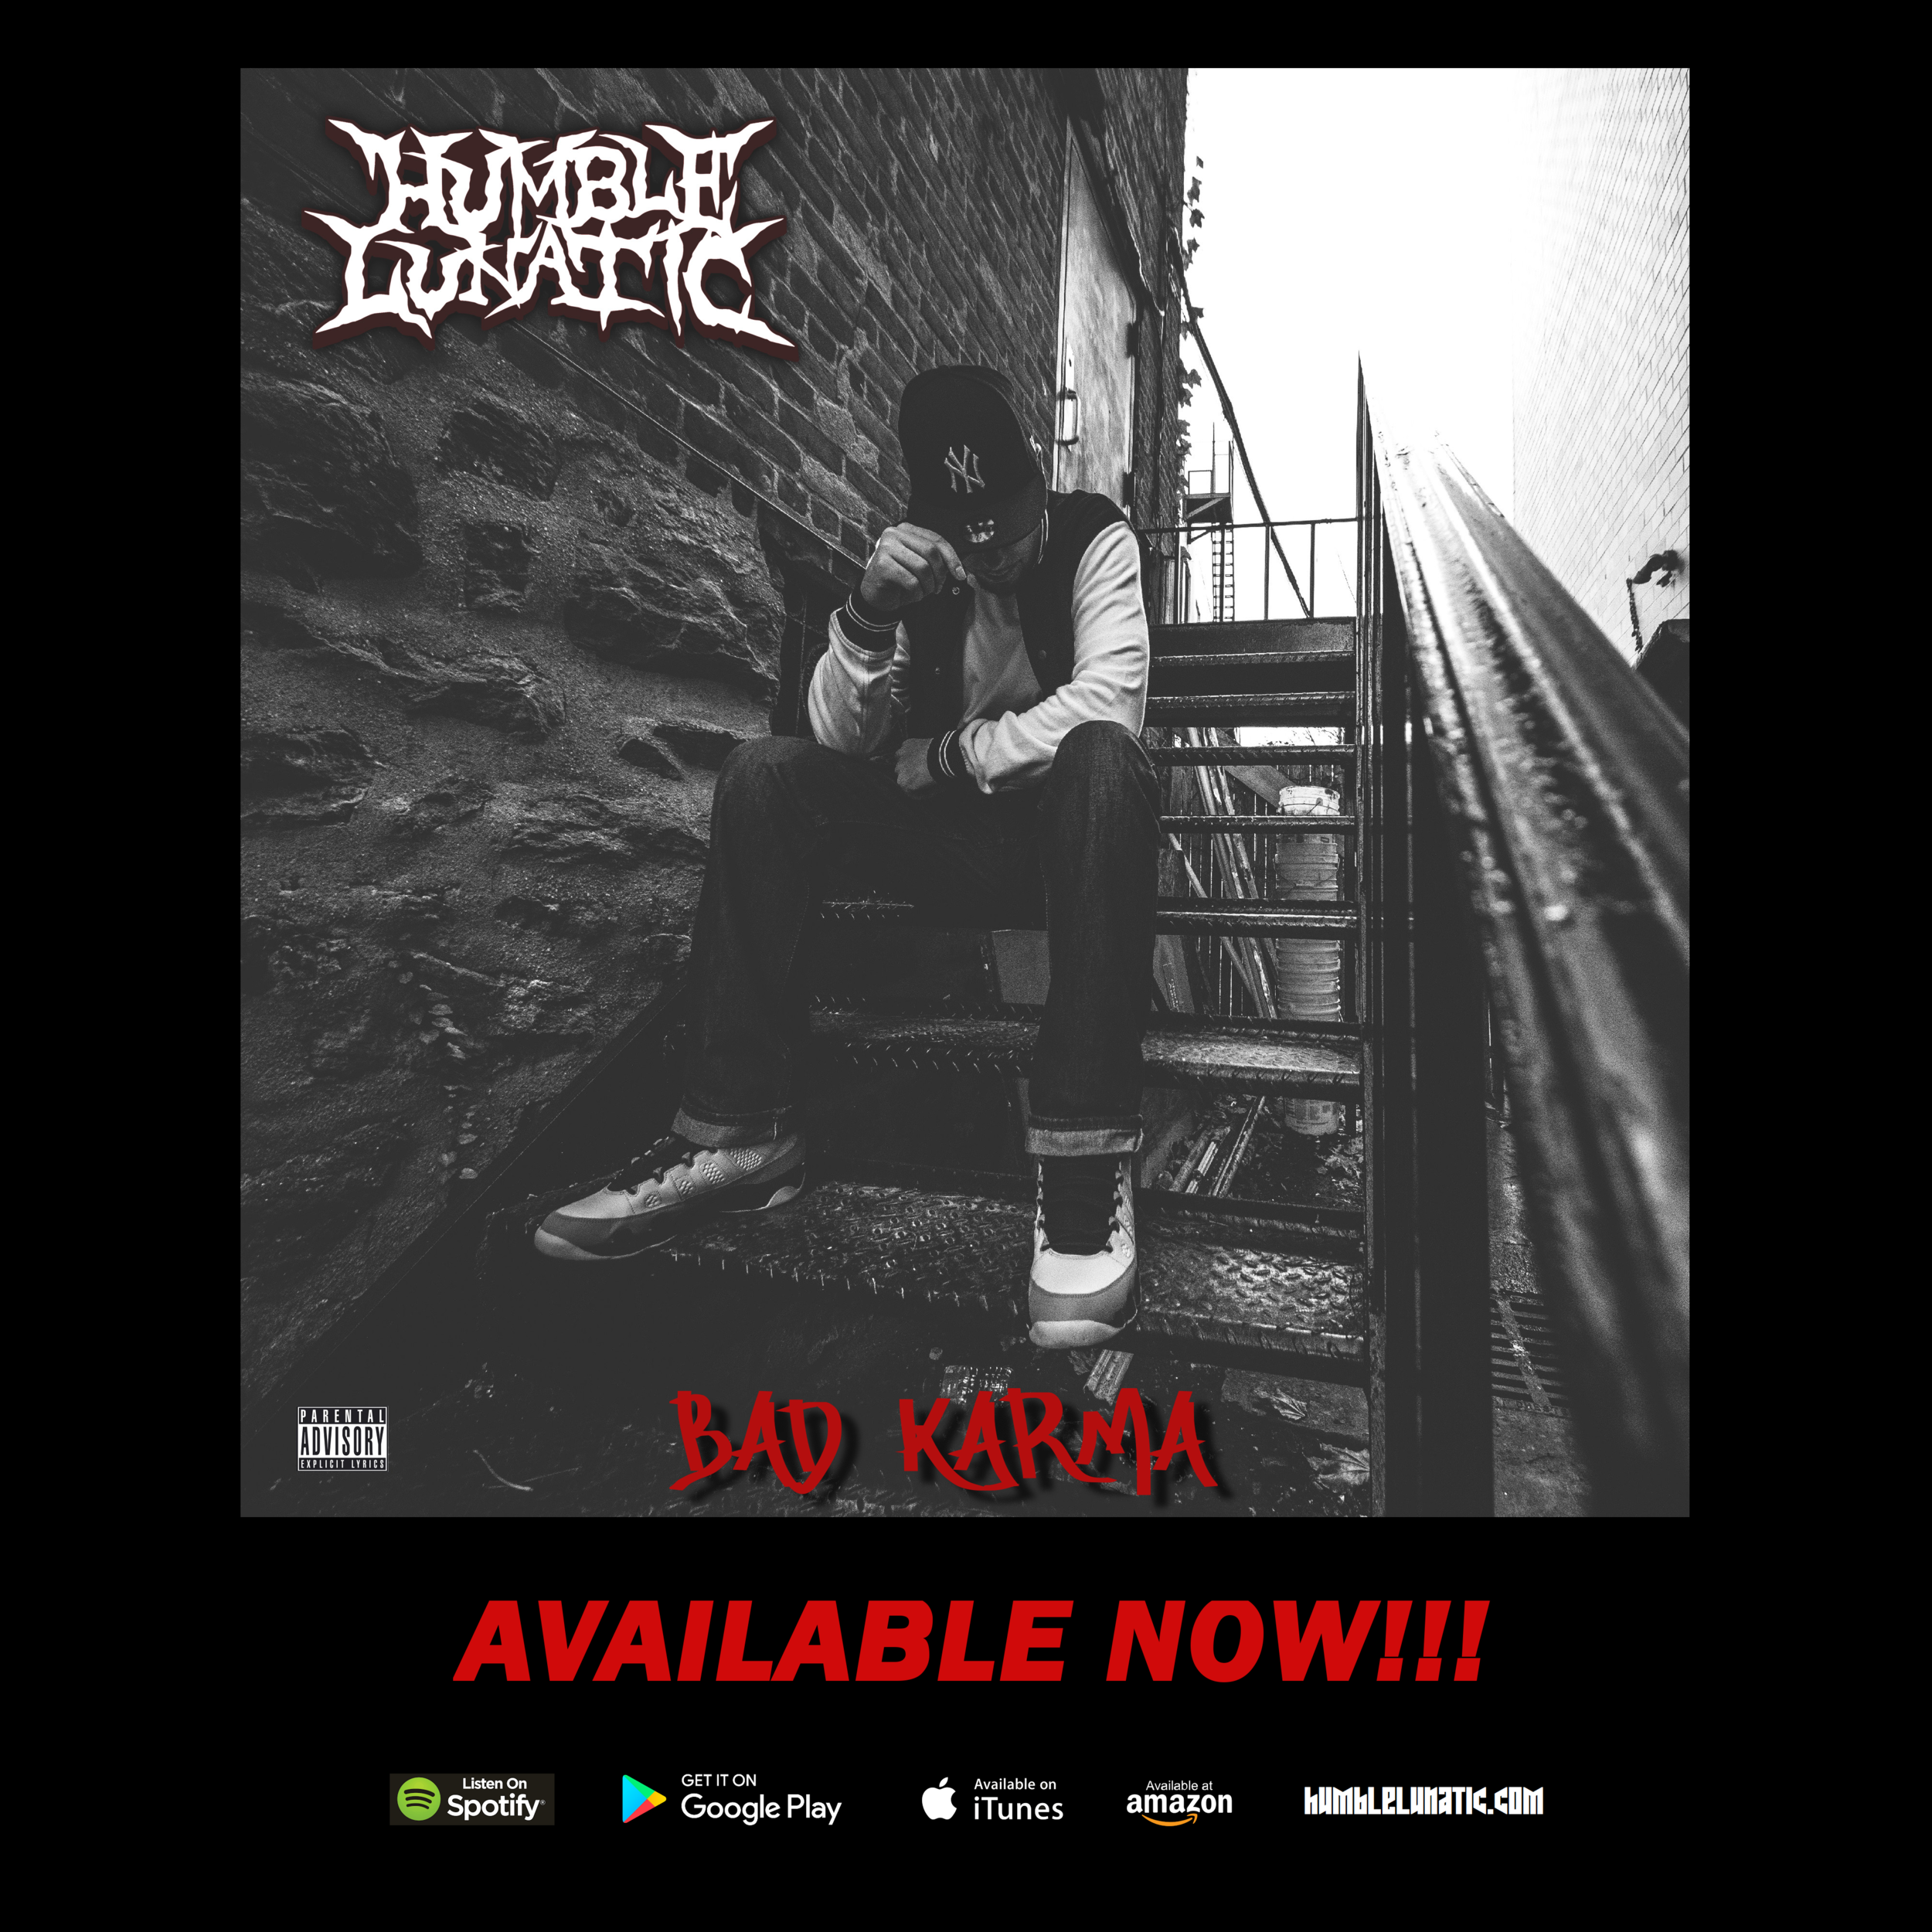 Bad Karma is available on ALL digital platforms NOW!!